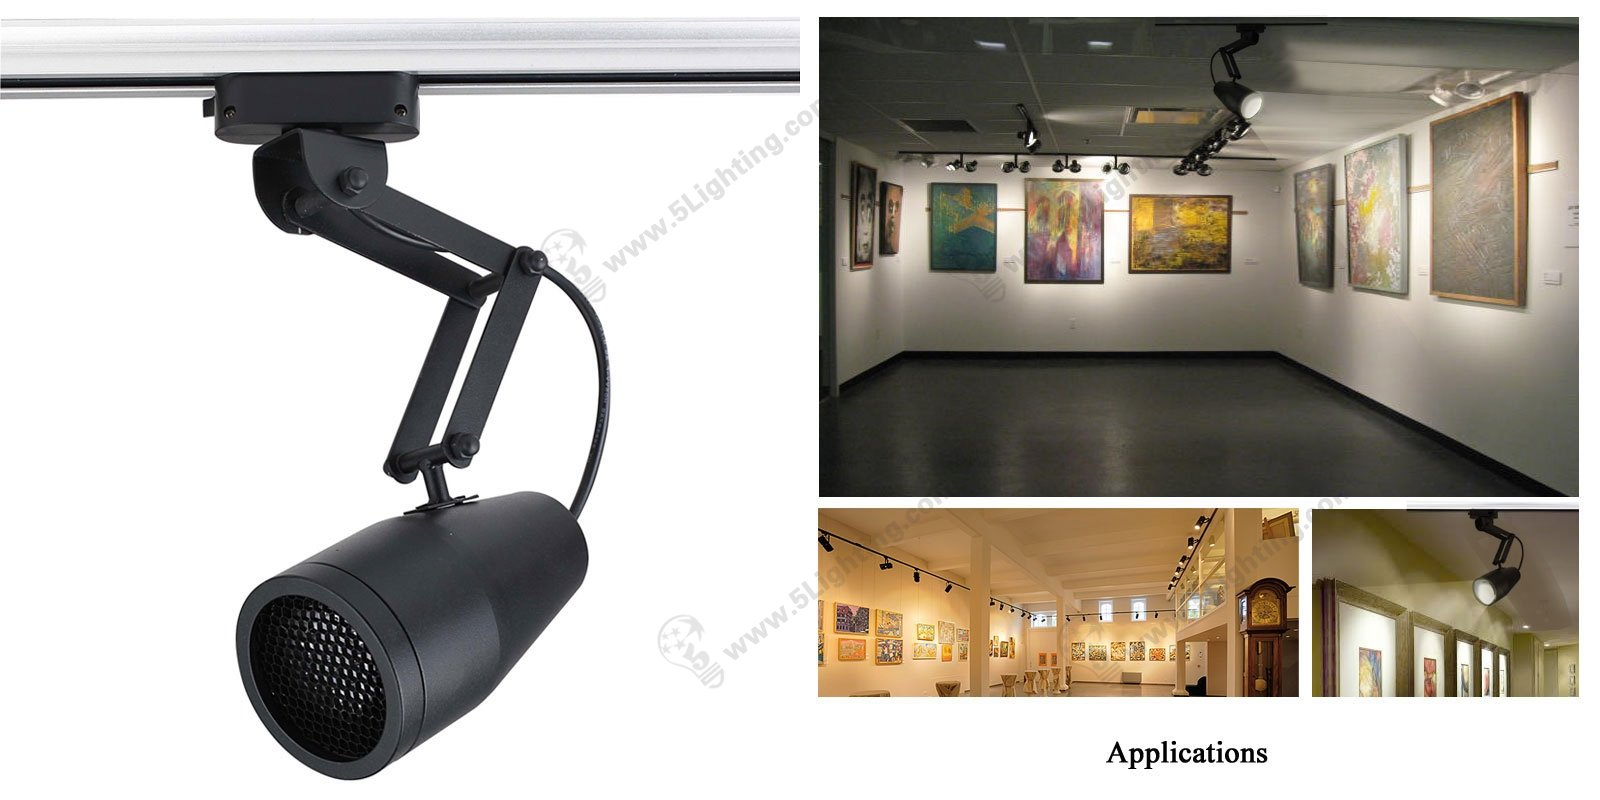 Retractable Track Lighting swing arm adjustable lighting